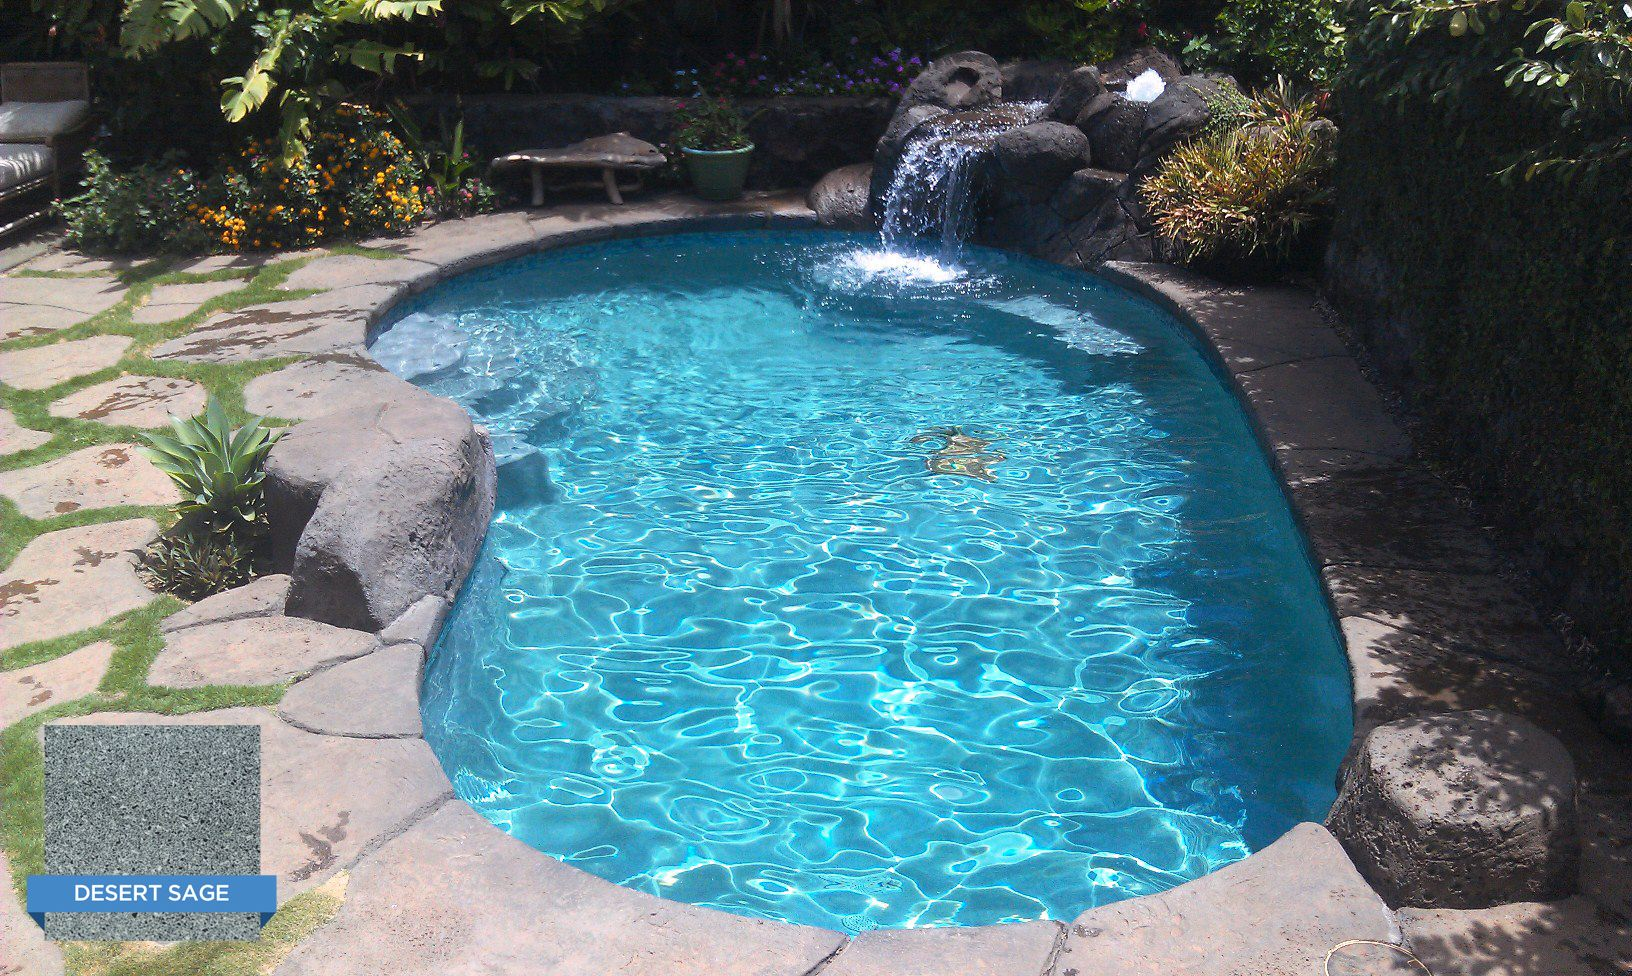 Hydrazzo Desert Sage Really Blends Nicely In This Pool From A Natural Sage Color On The Steps